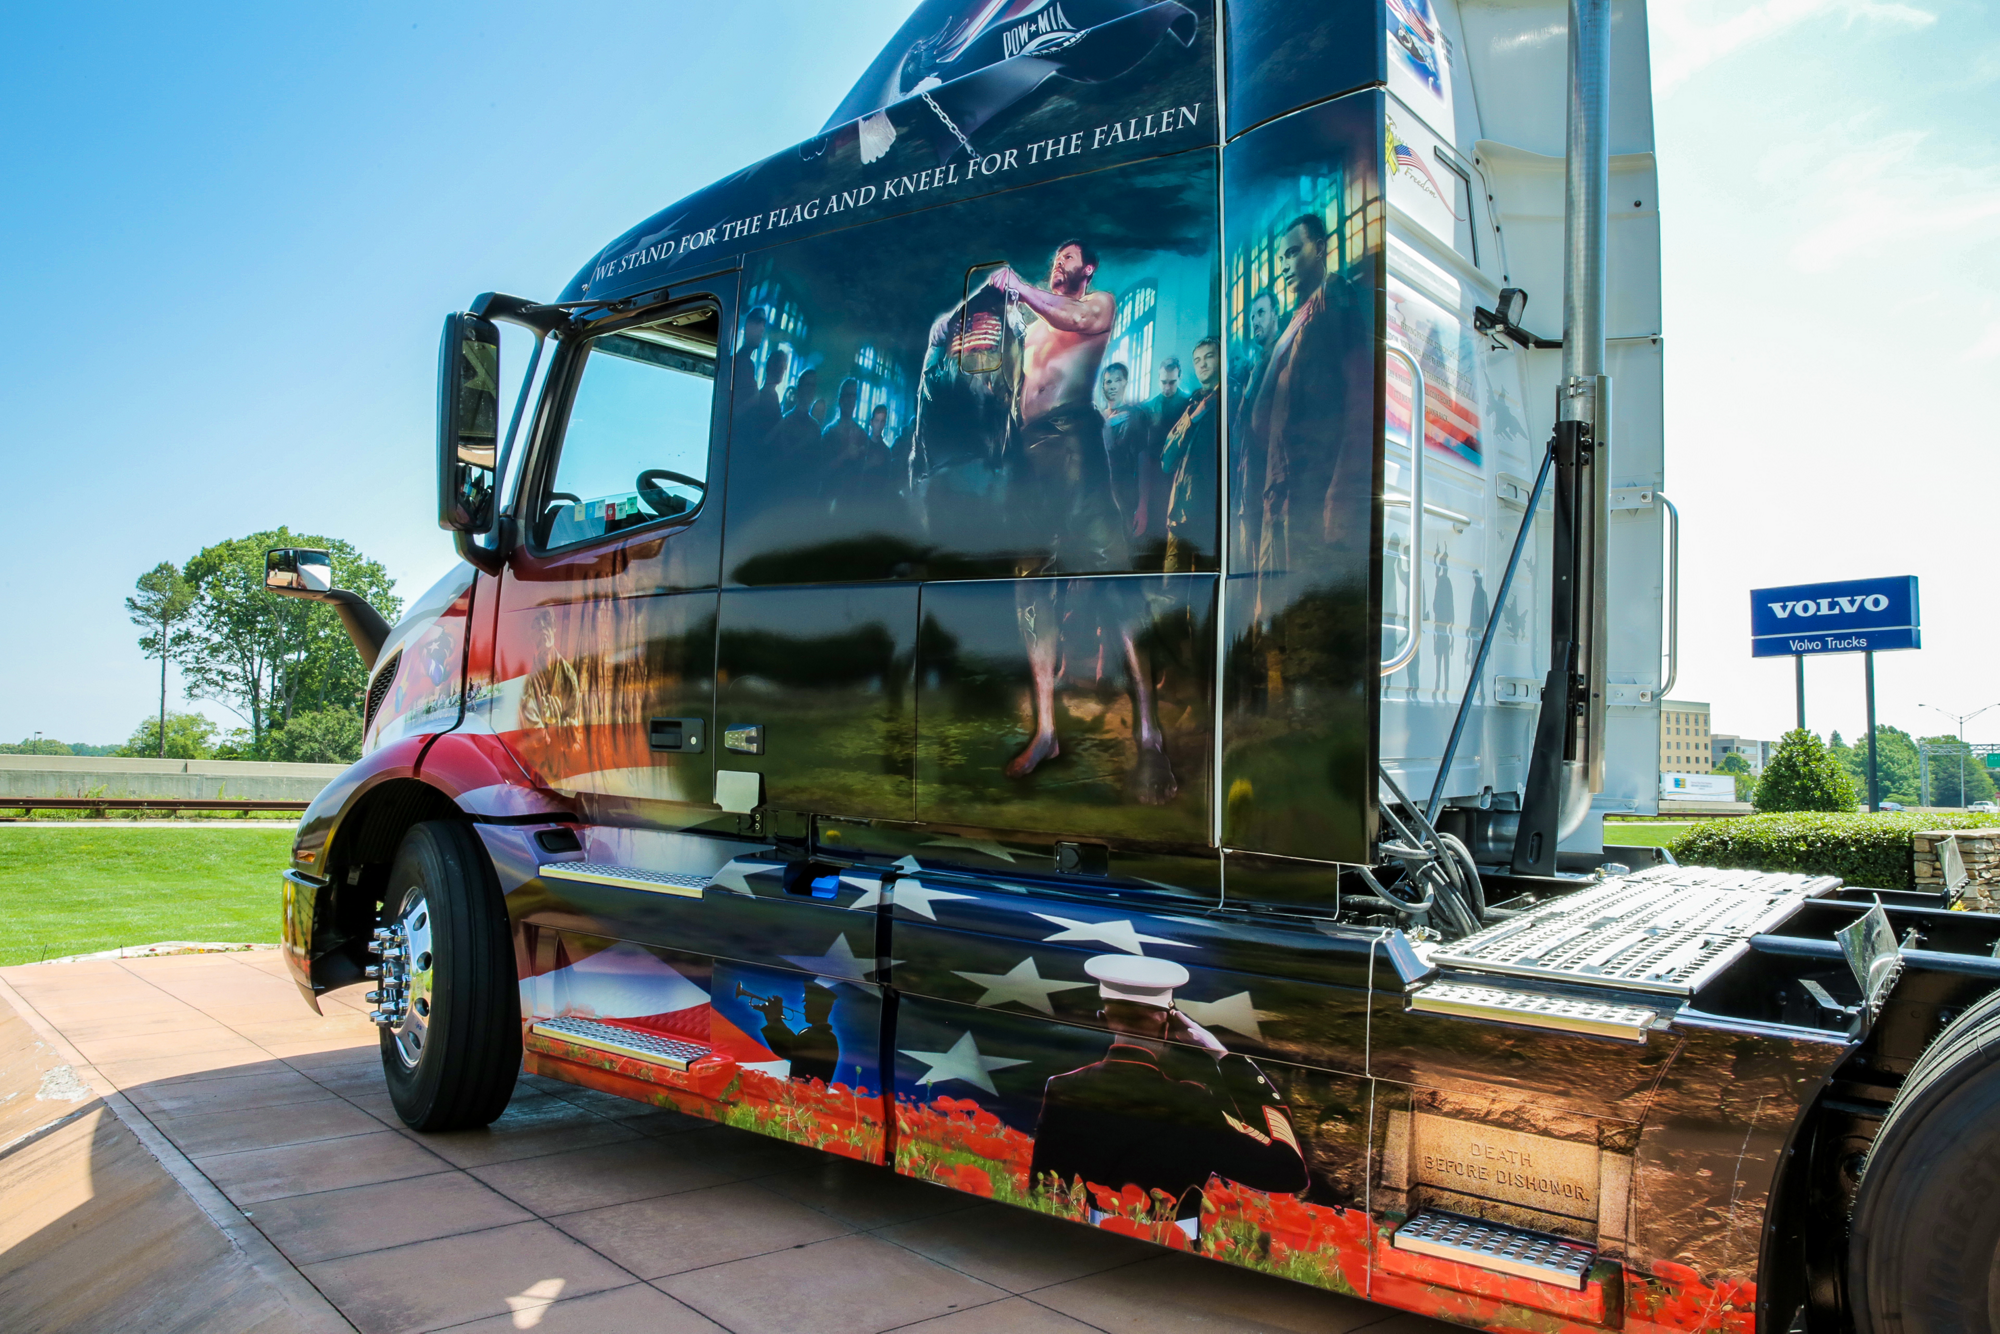 Volvo shows off Ride for Freedom truck